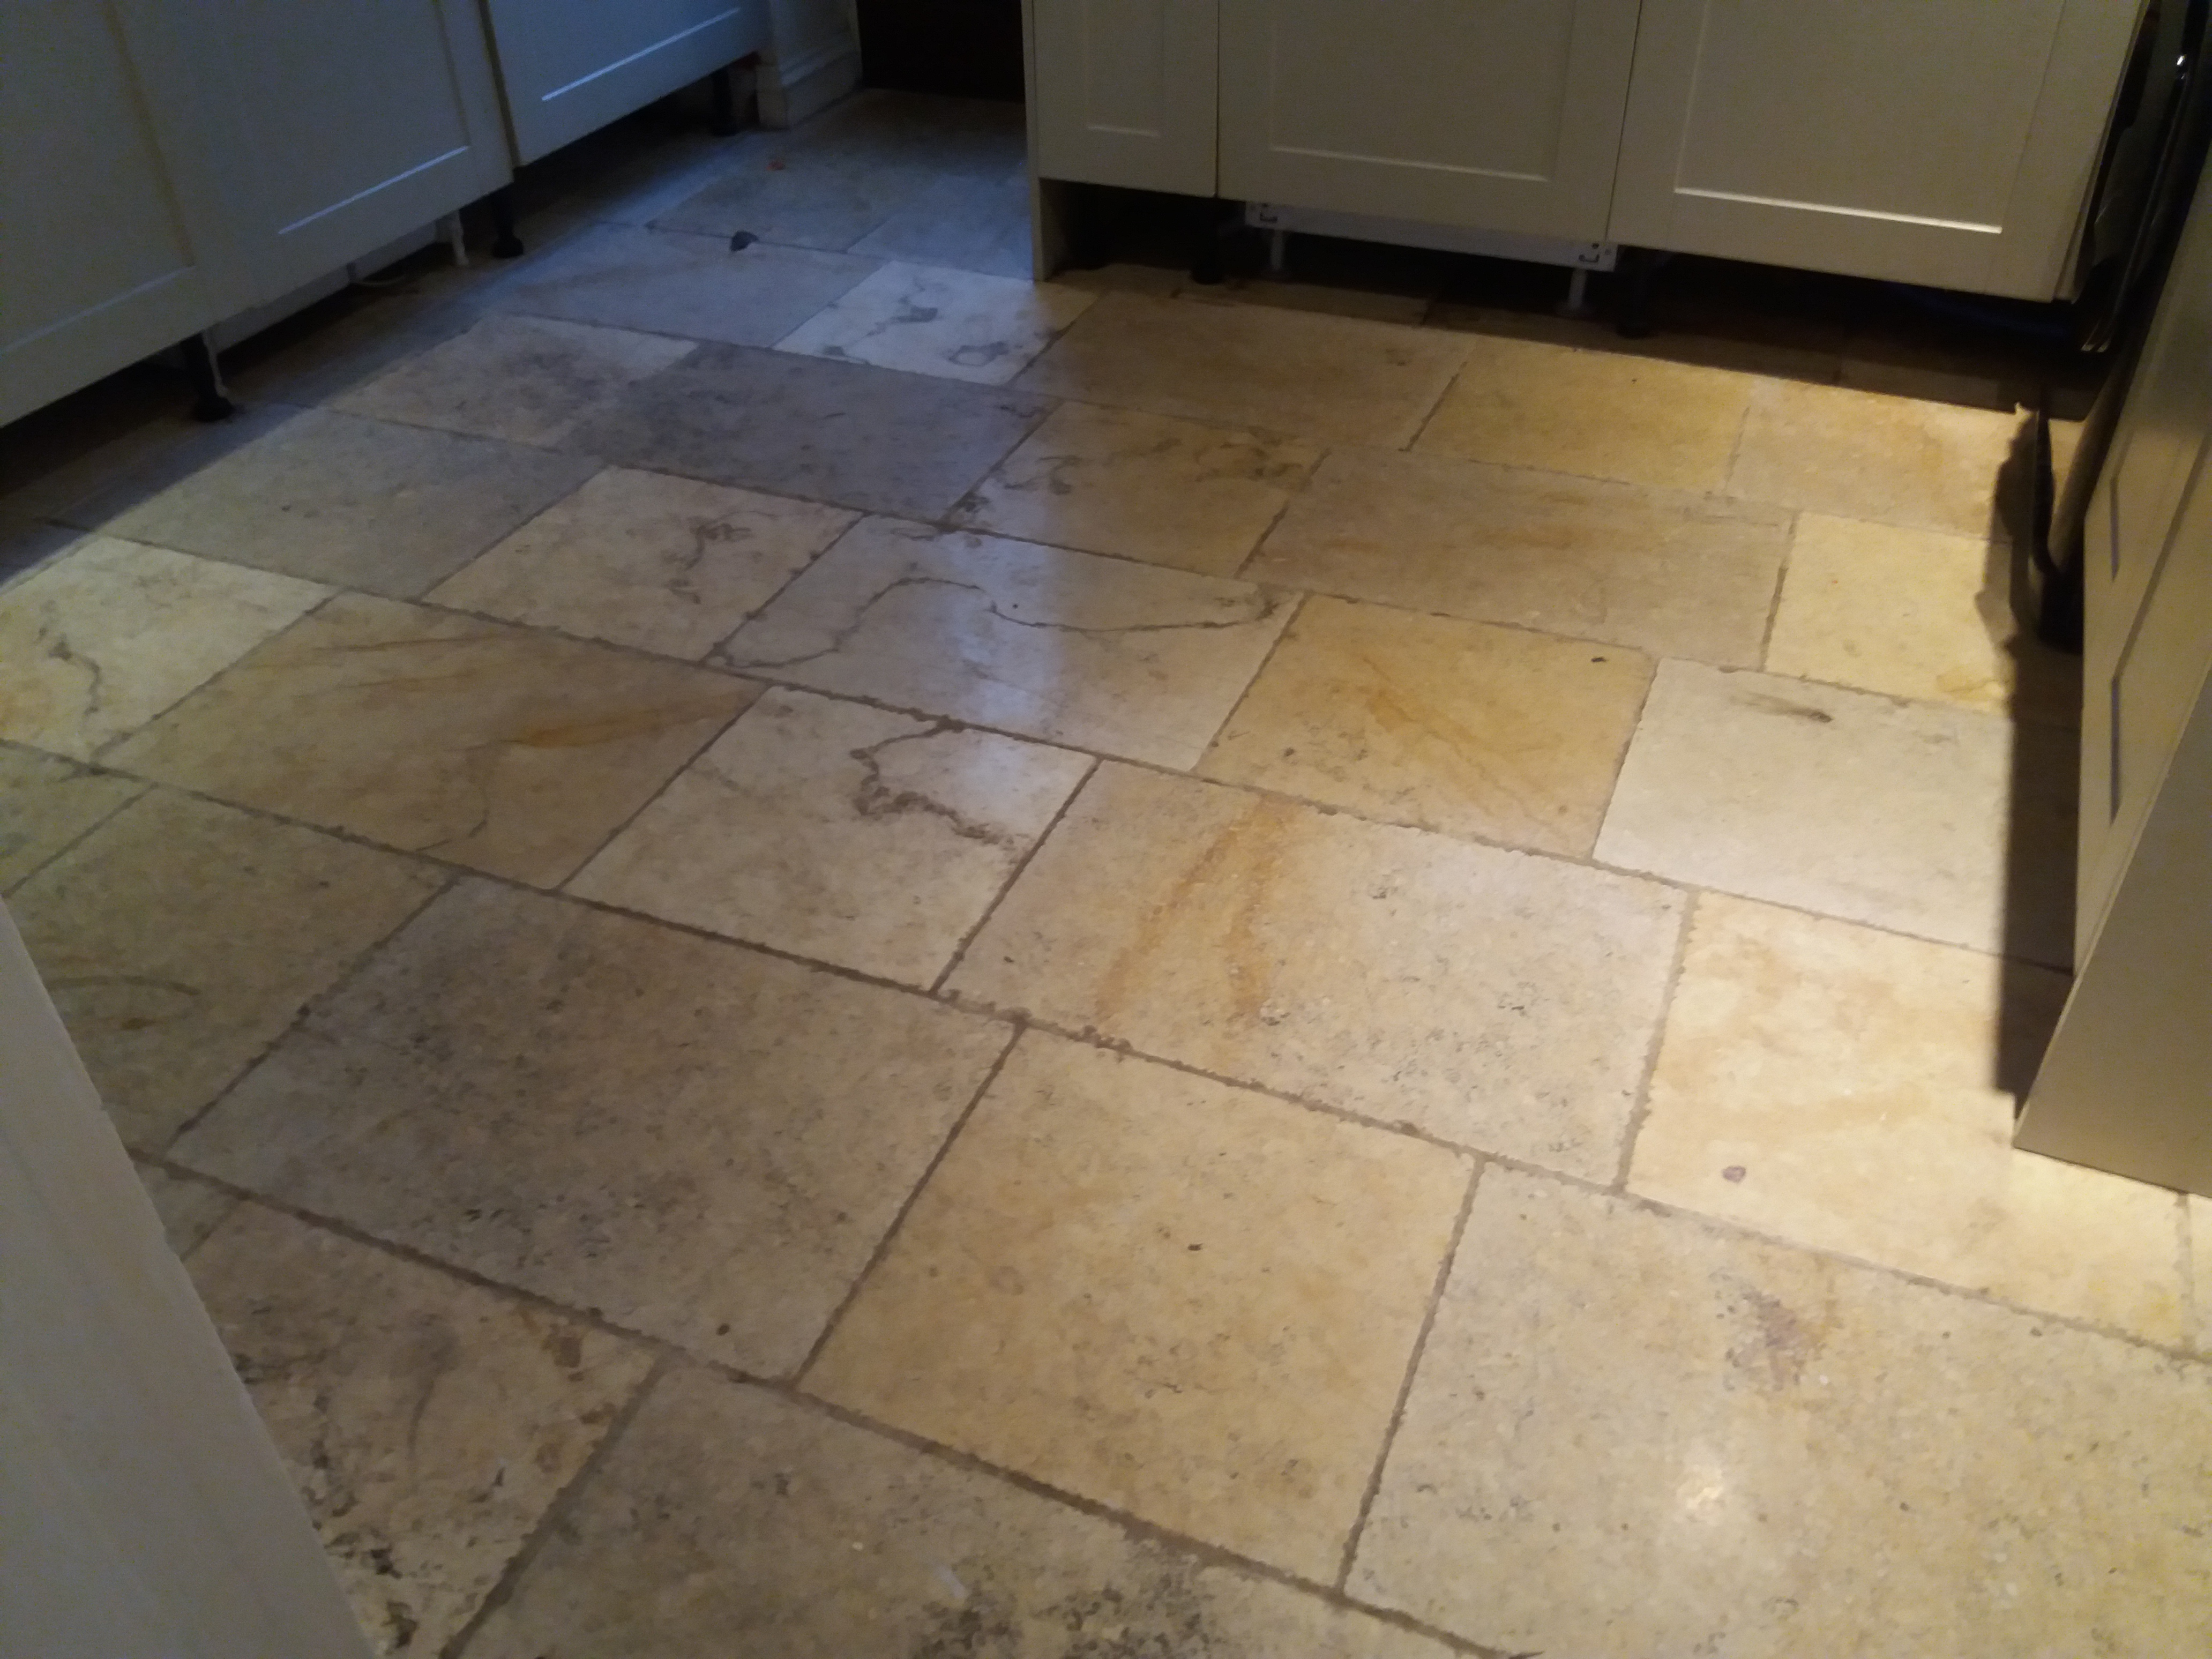 Stone floor cleaning in the cotswolds floor restore oxford ltd the natural colours and markings within the stone were really brought out and after applying the seal the colours were enhanced and the floors looked dailygadgetfo Gallery